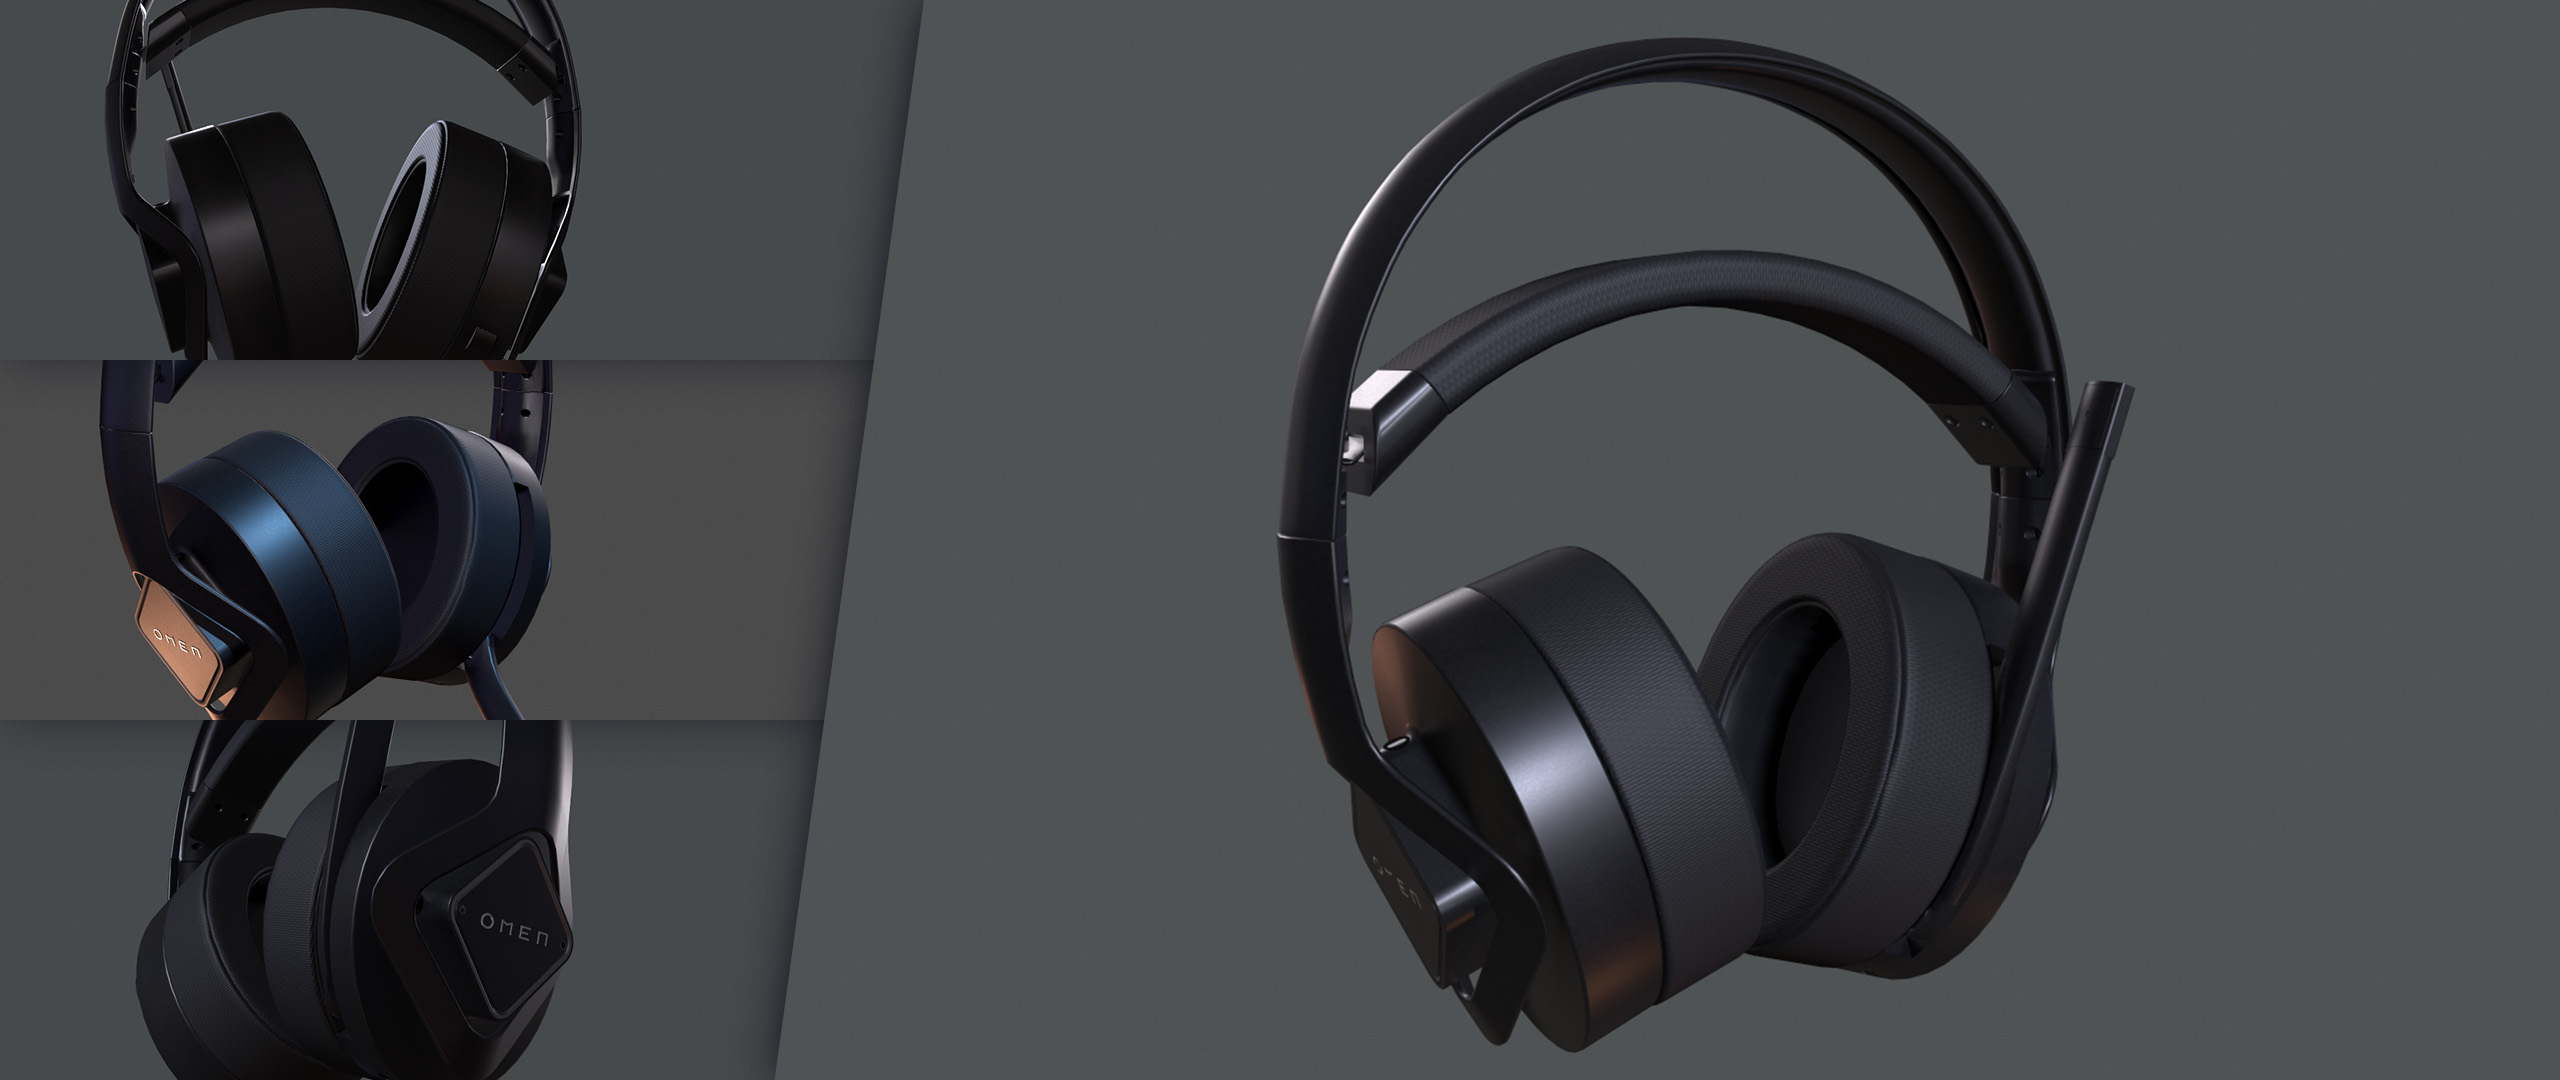 Services work banner - RT - HP Headset